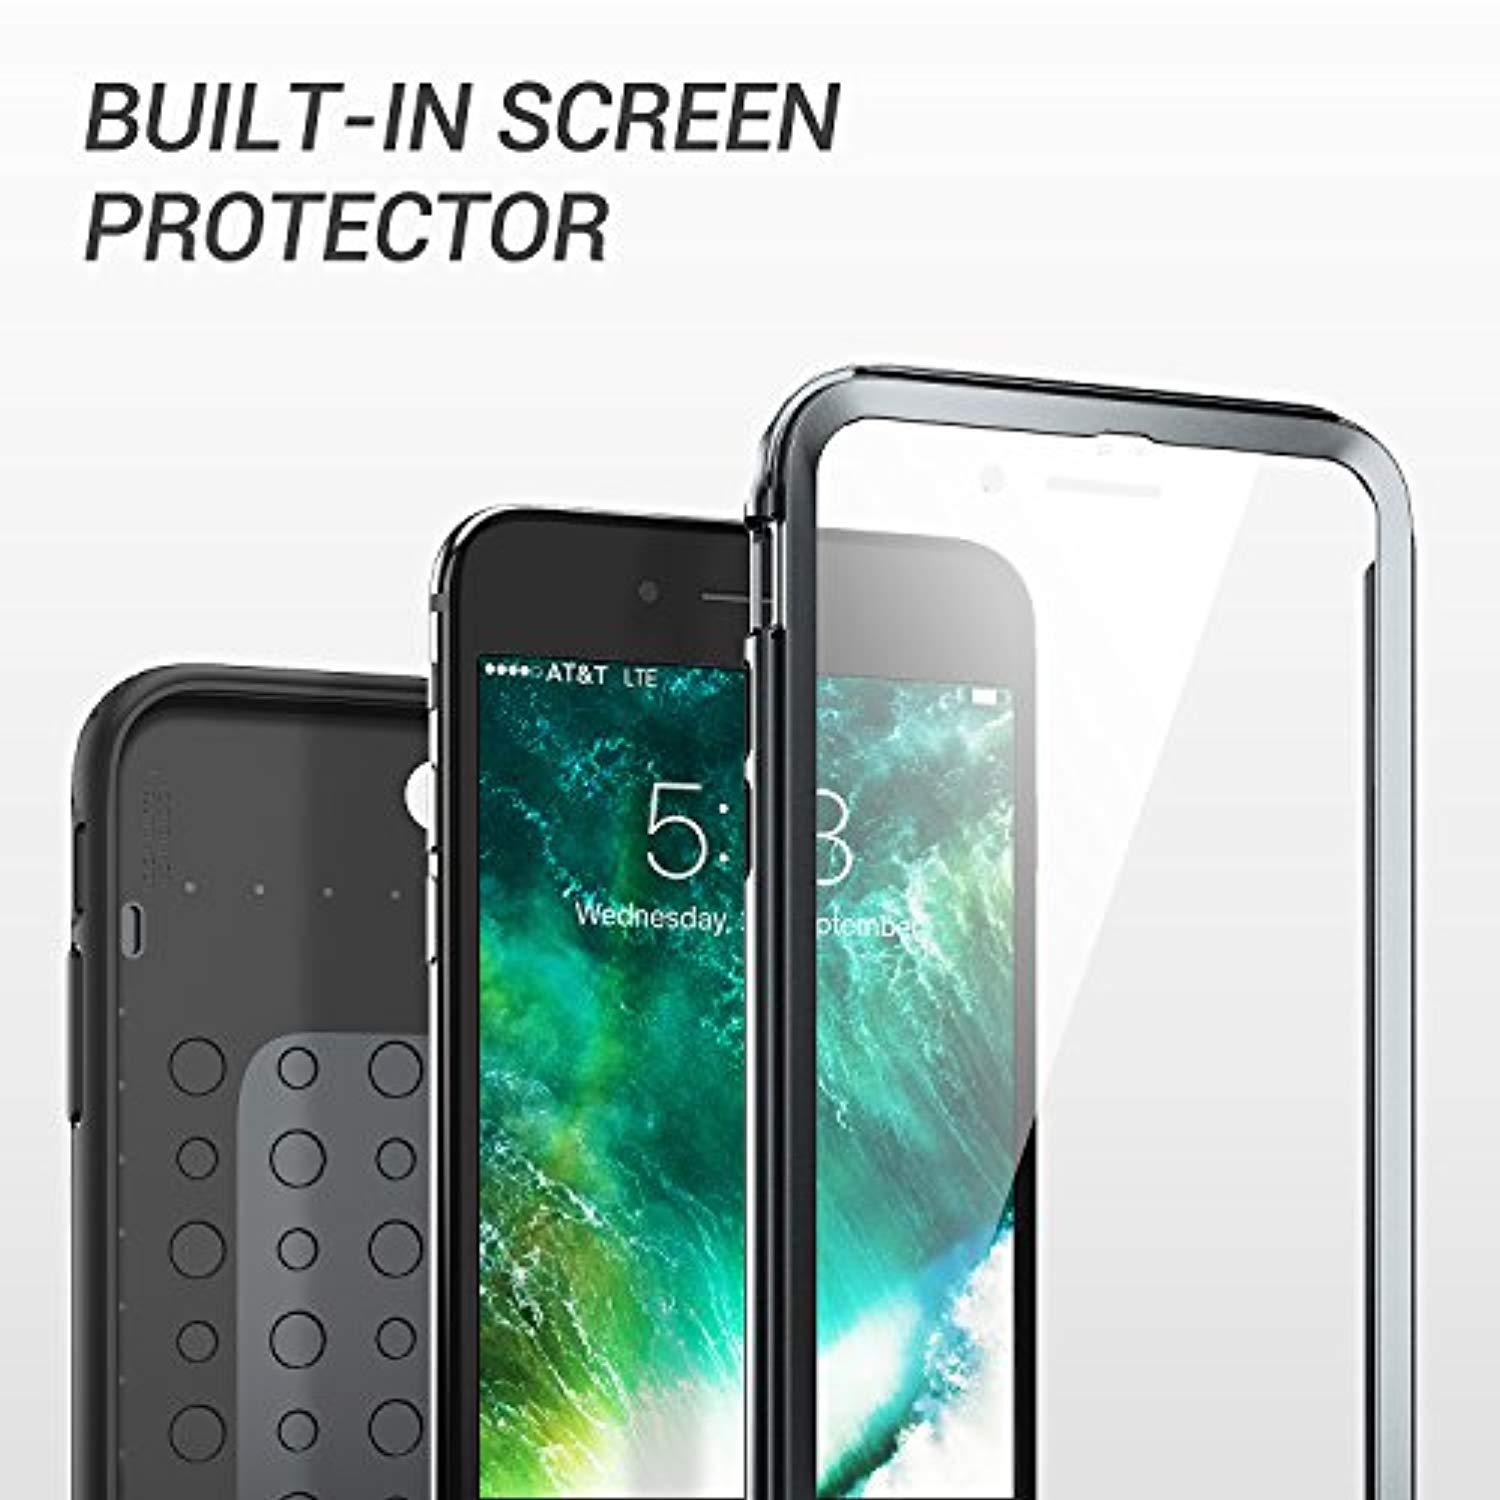 5.5 Inch Gunmetal Full Body Rugged with Built-in Screen Protector Heavy Duty Protection Slim Fit Shockproof Cover for Apple iPhone 8 Plus YOUMAKER Case for iPhone 8 Plus /& iPhone 7 Plus 2017